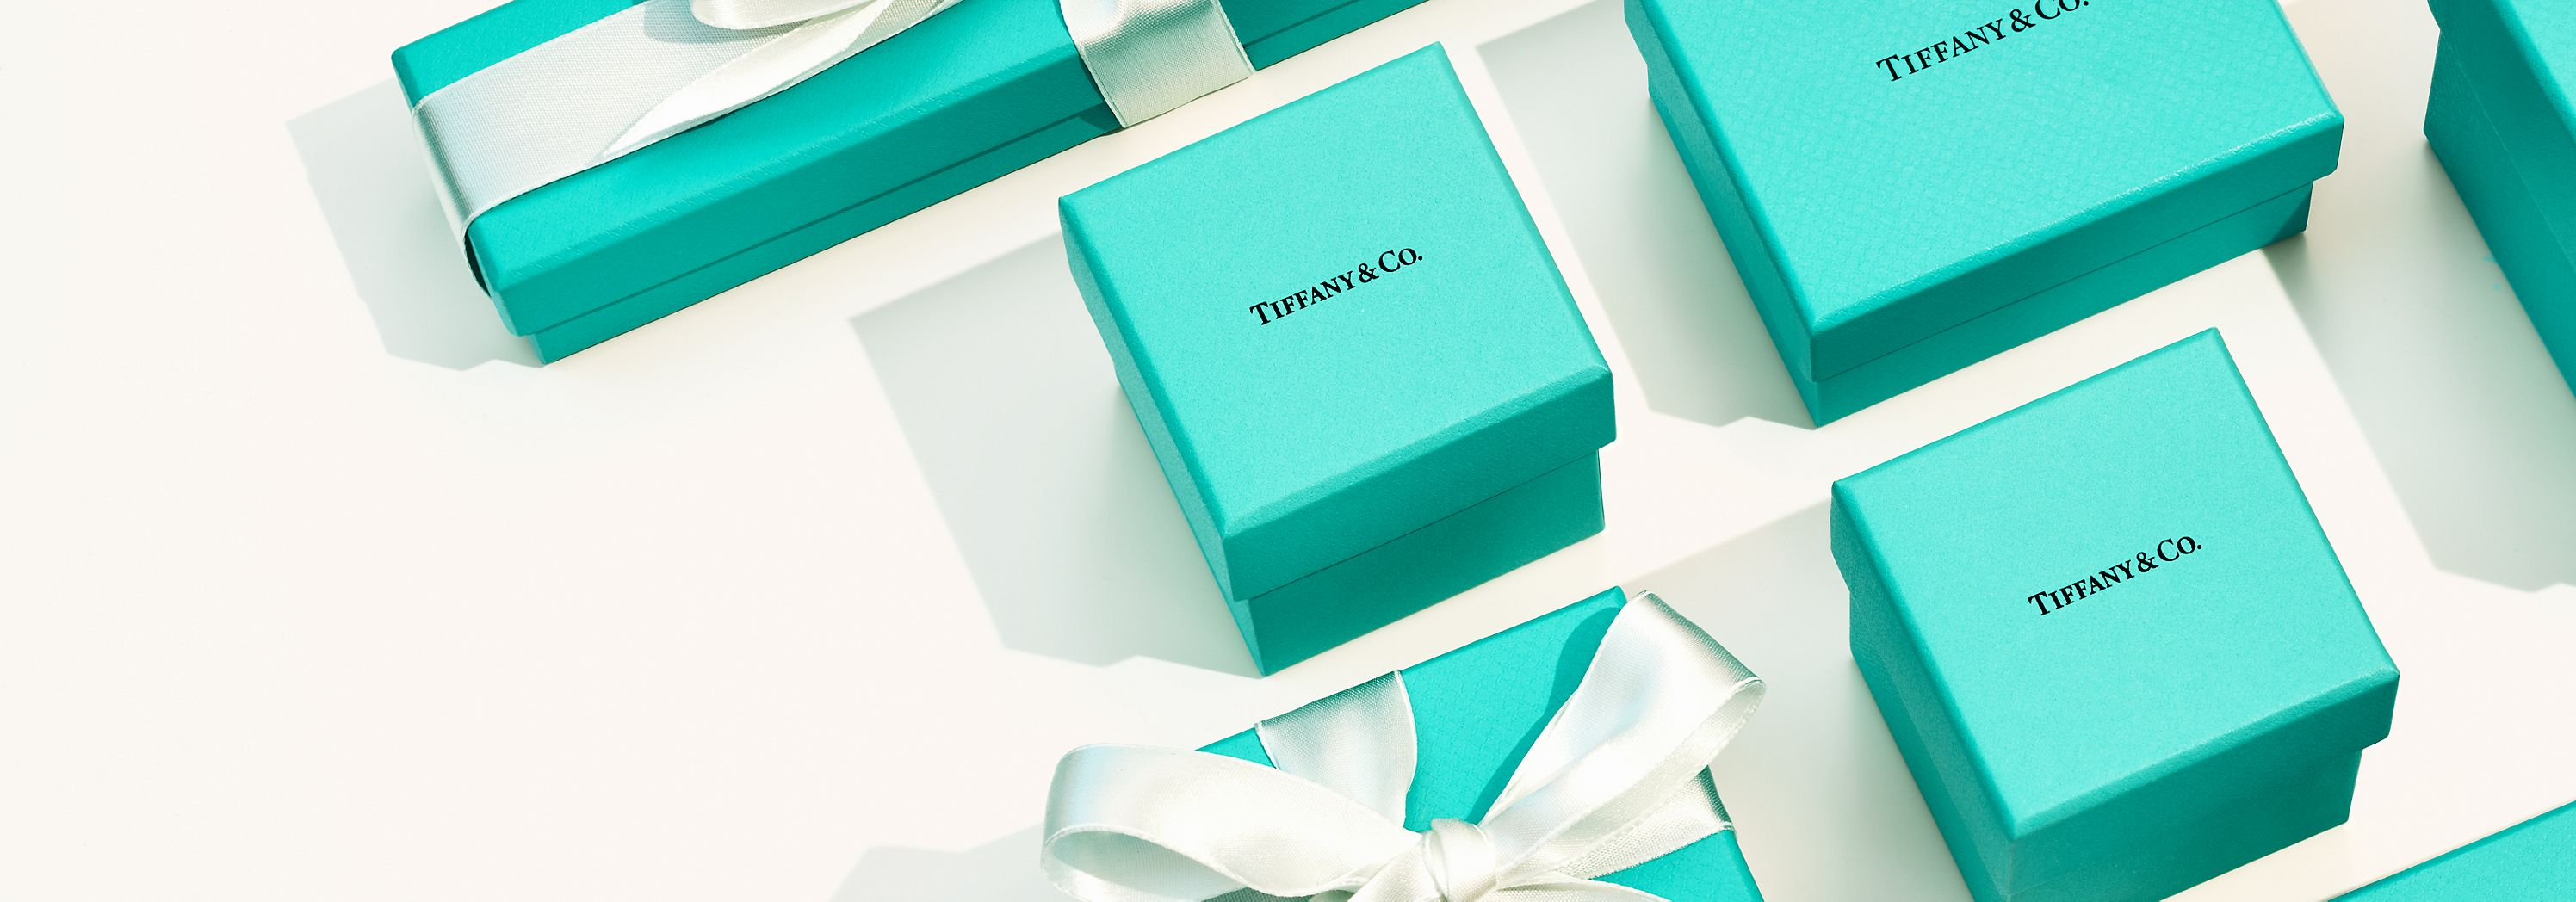 Shop Tiffany & Co. Gifts